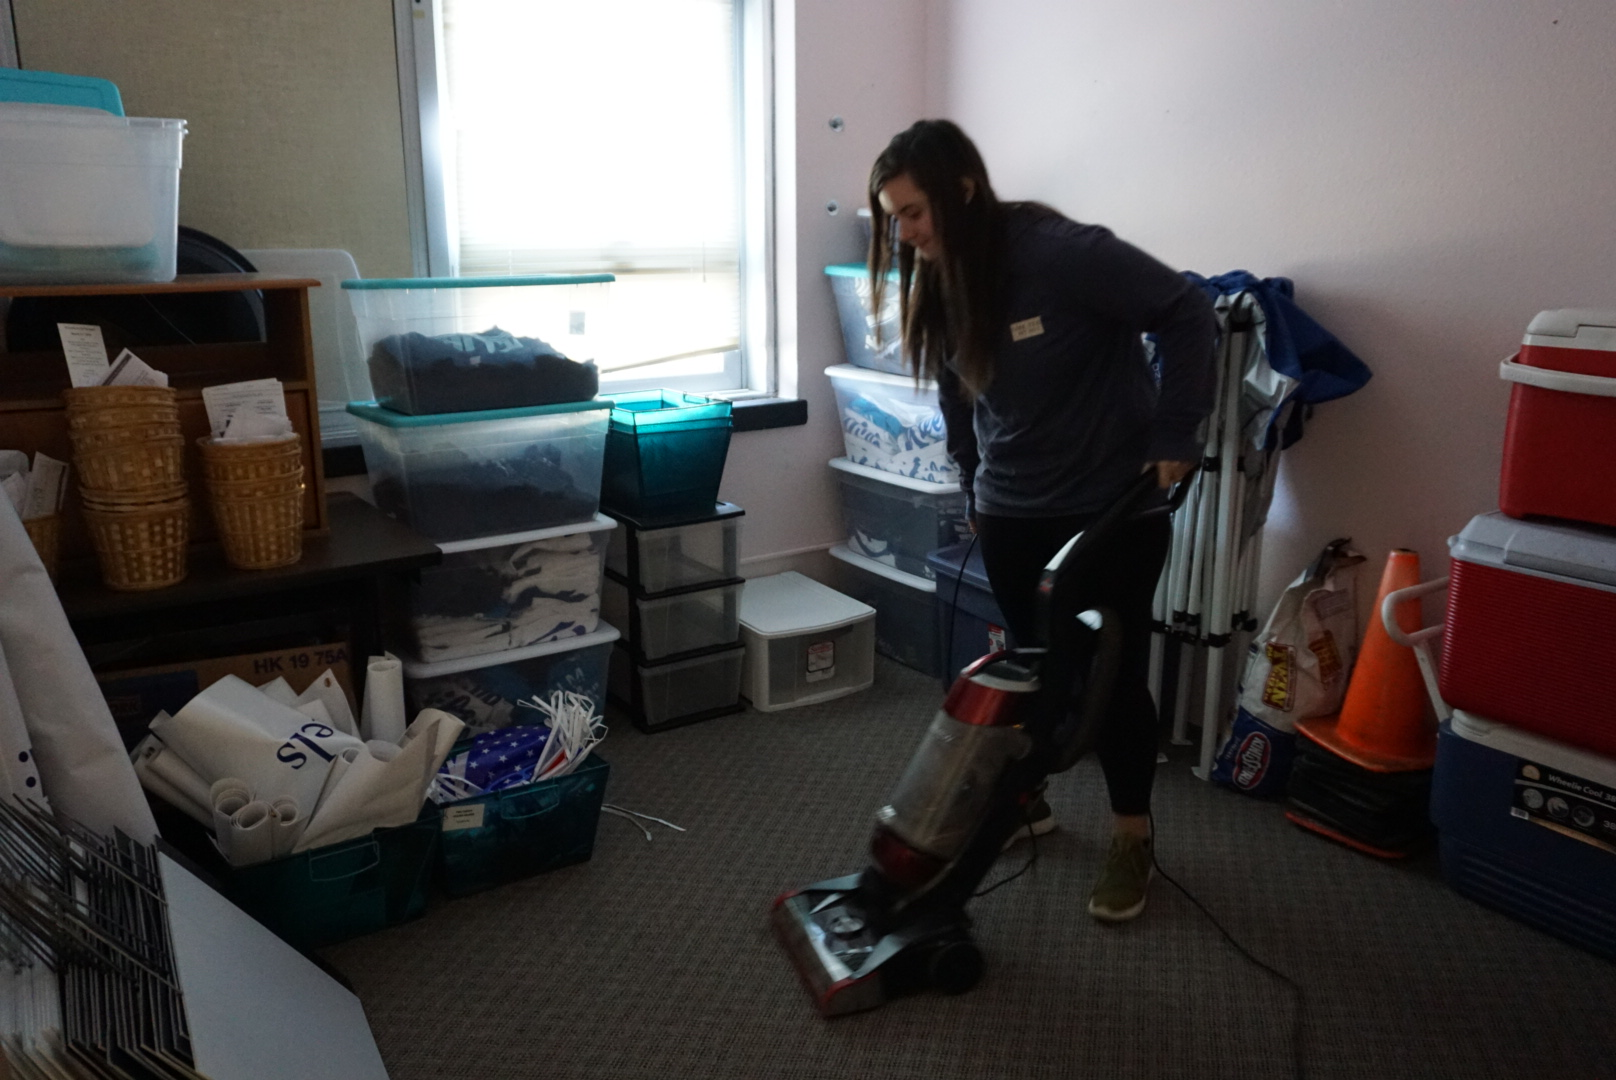 student vacuuming